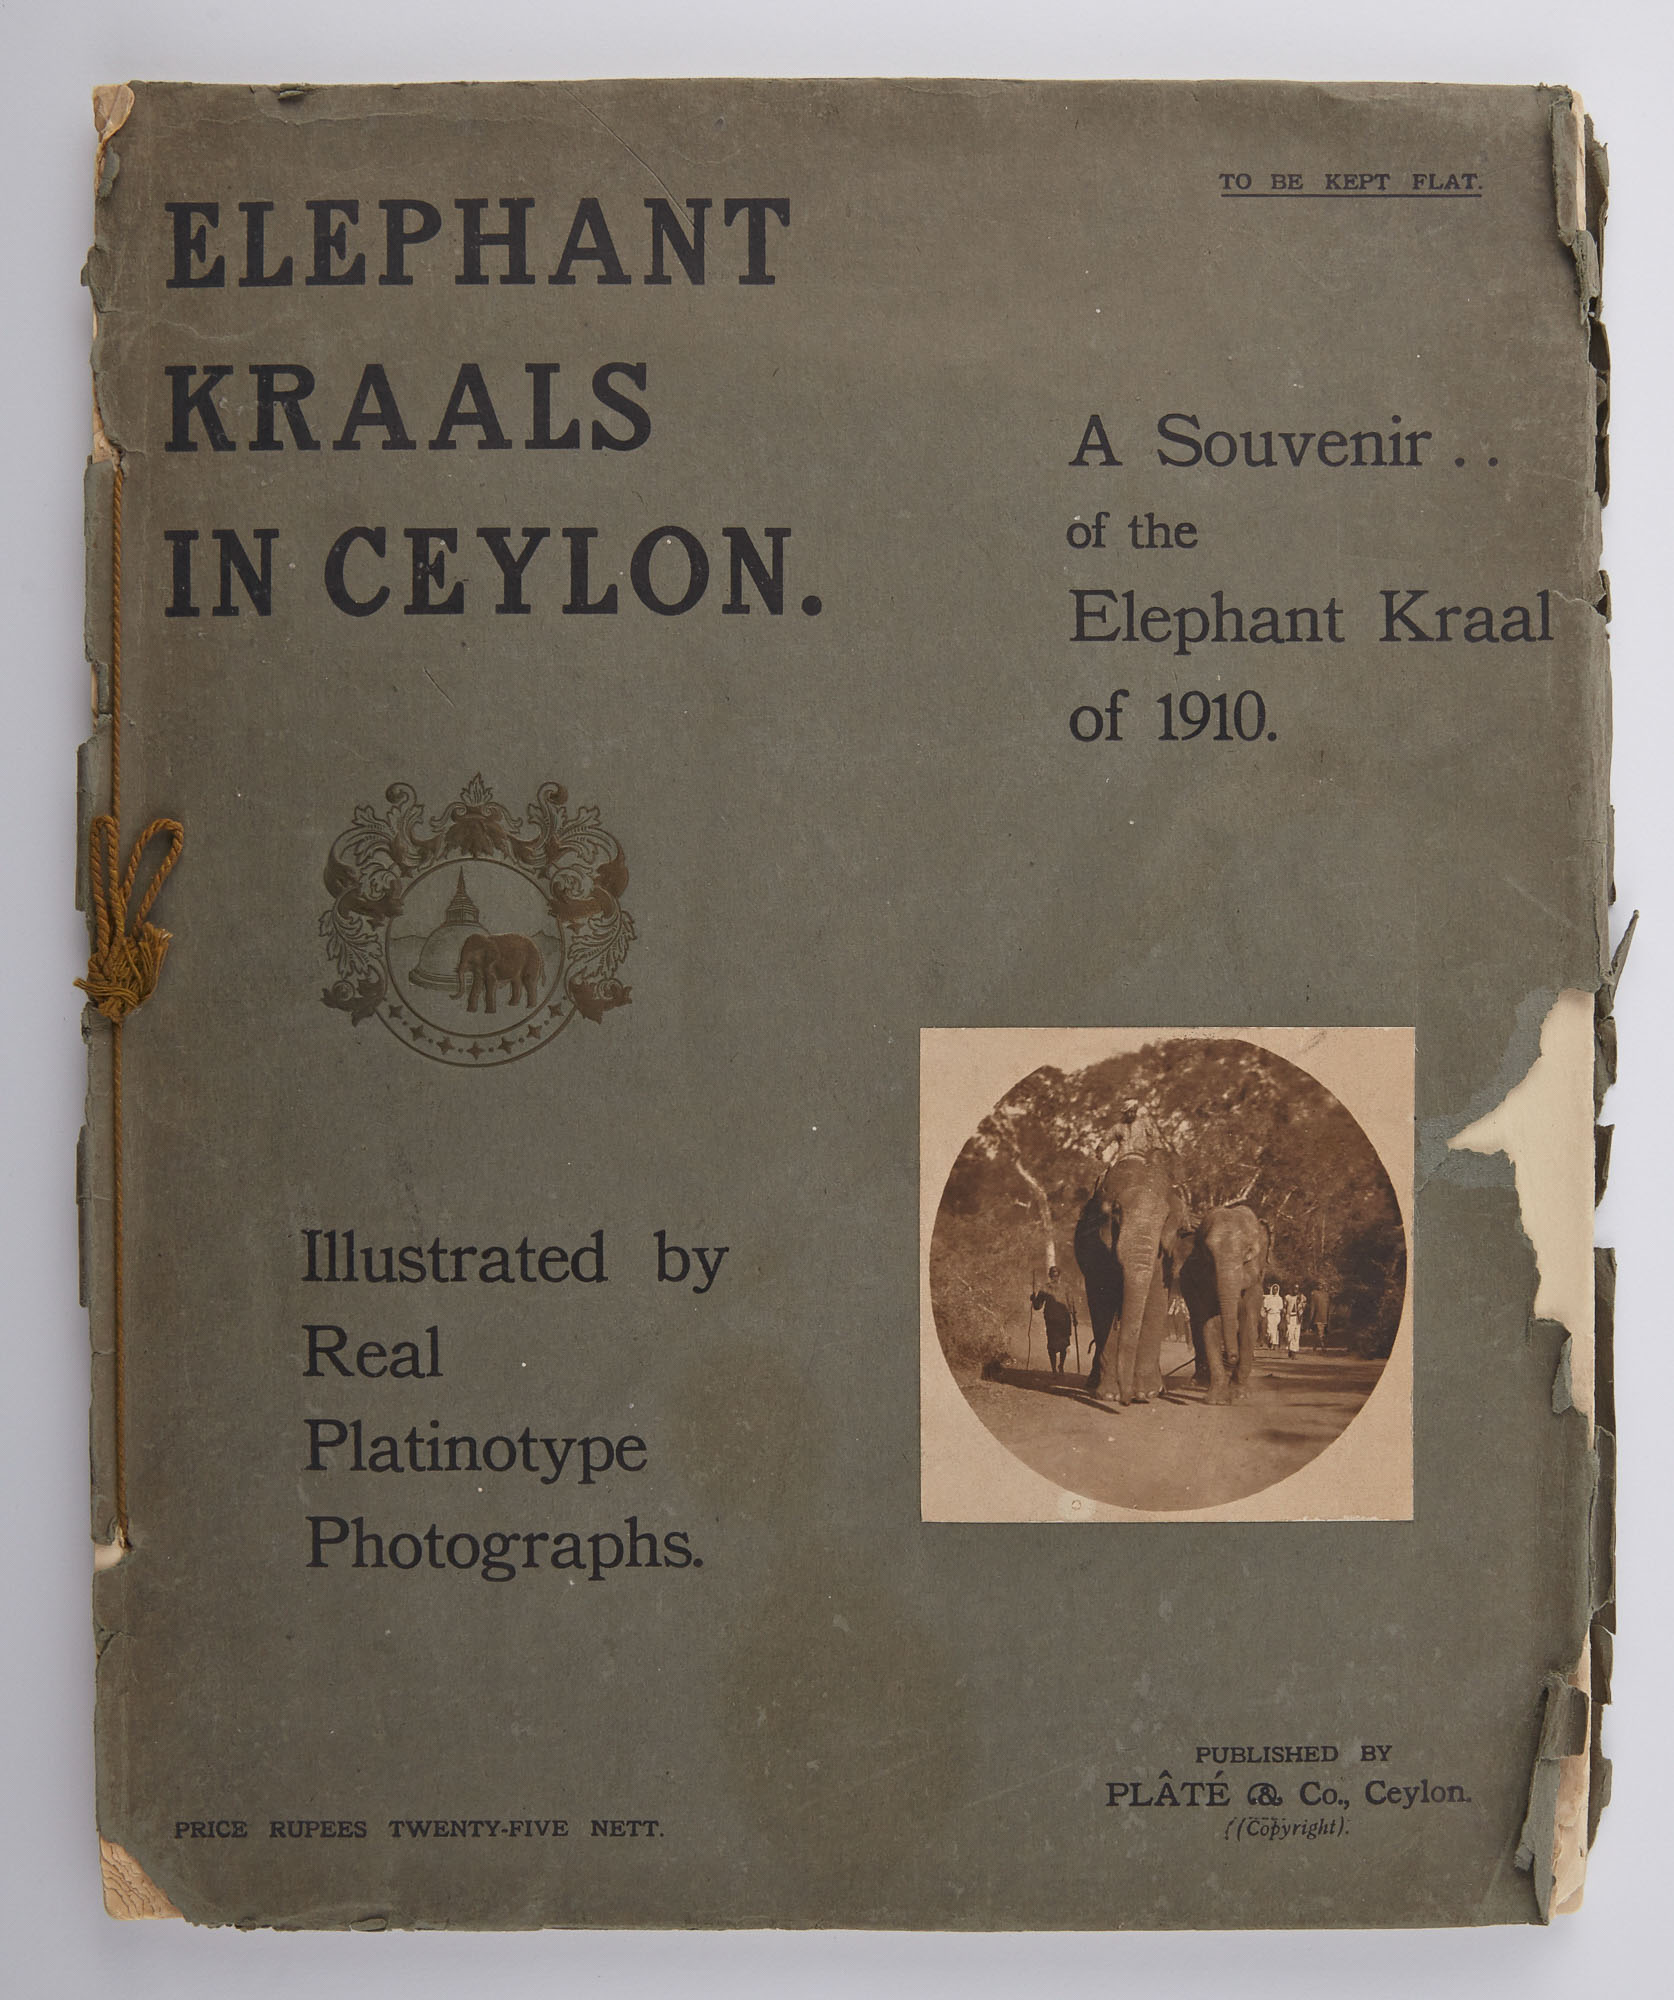 Lot image - [ELEPHANTS]  Elephant Kraals in Ceylon. A Souvenir of The Elephant Kraal of 1910. With Thirty Real Platinotype Photographs, Map and Diagrams.